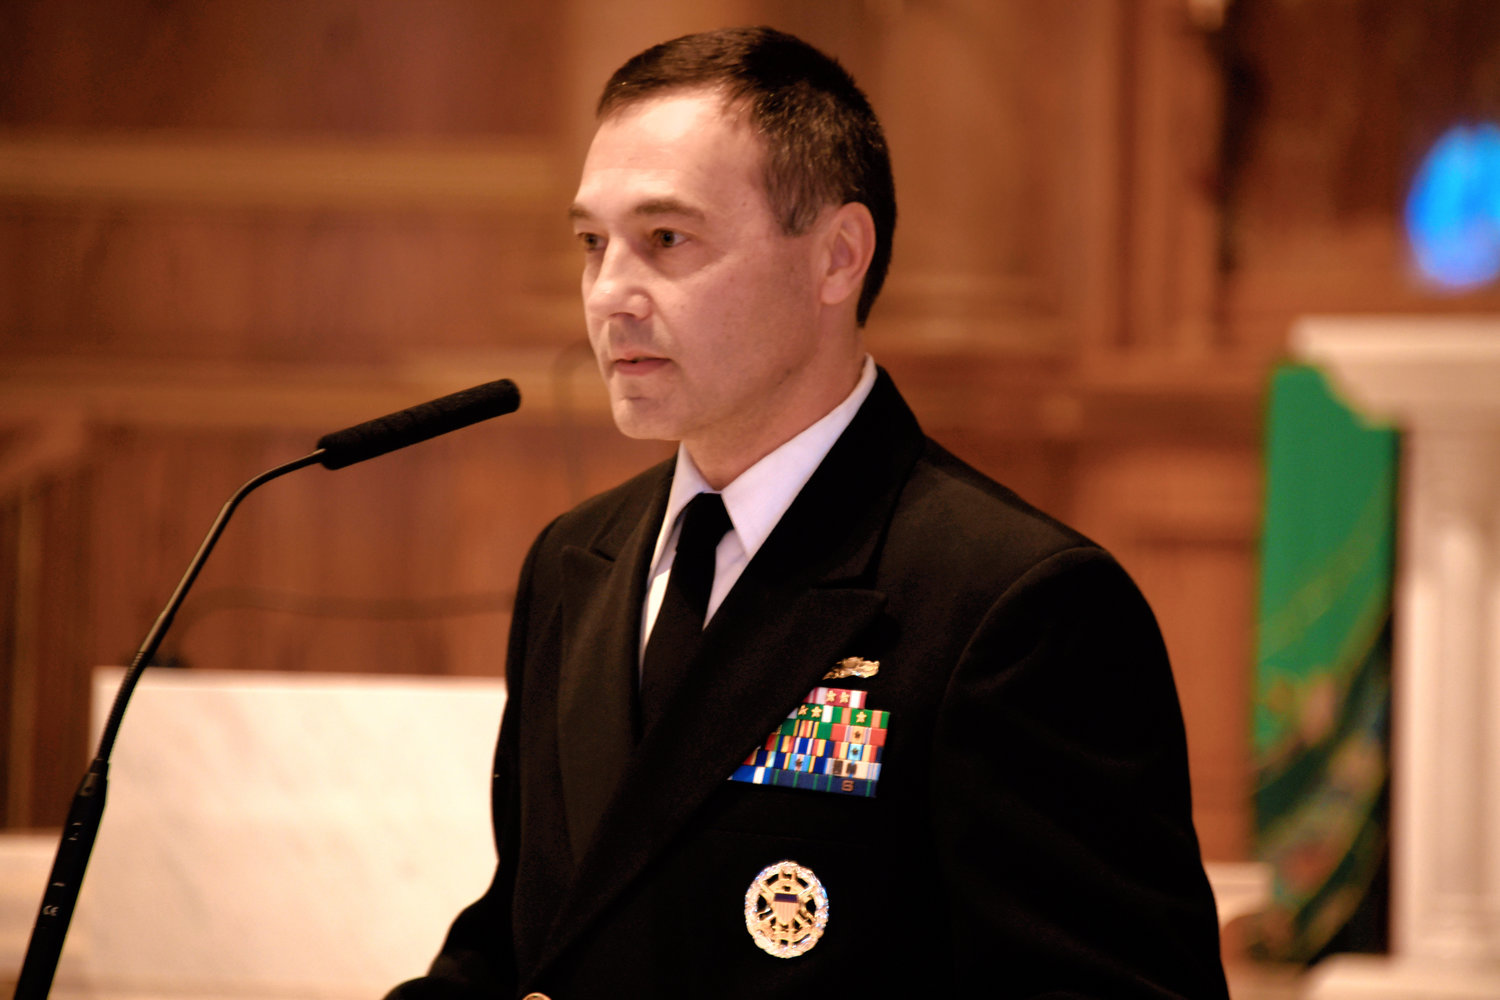 Retired U.S. Navy Captain Robert Bazan led the ceremony.